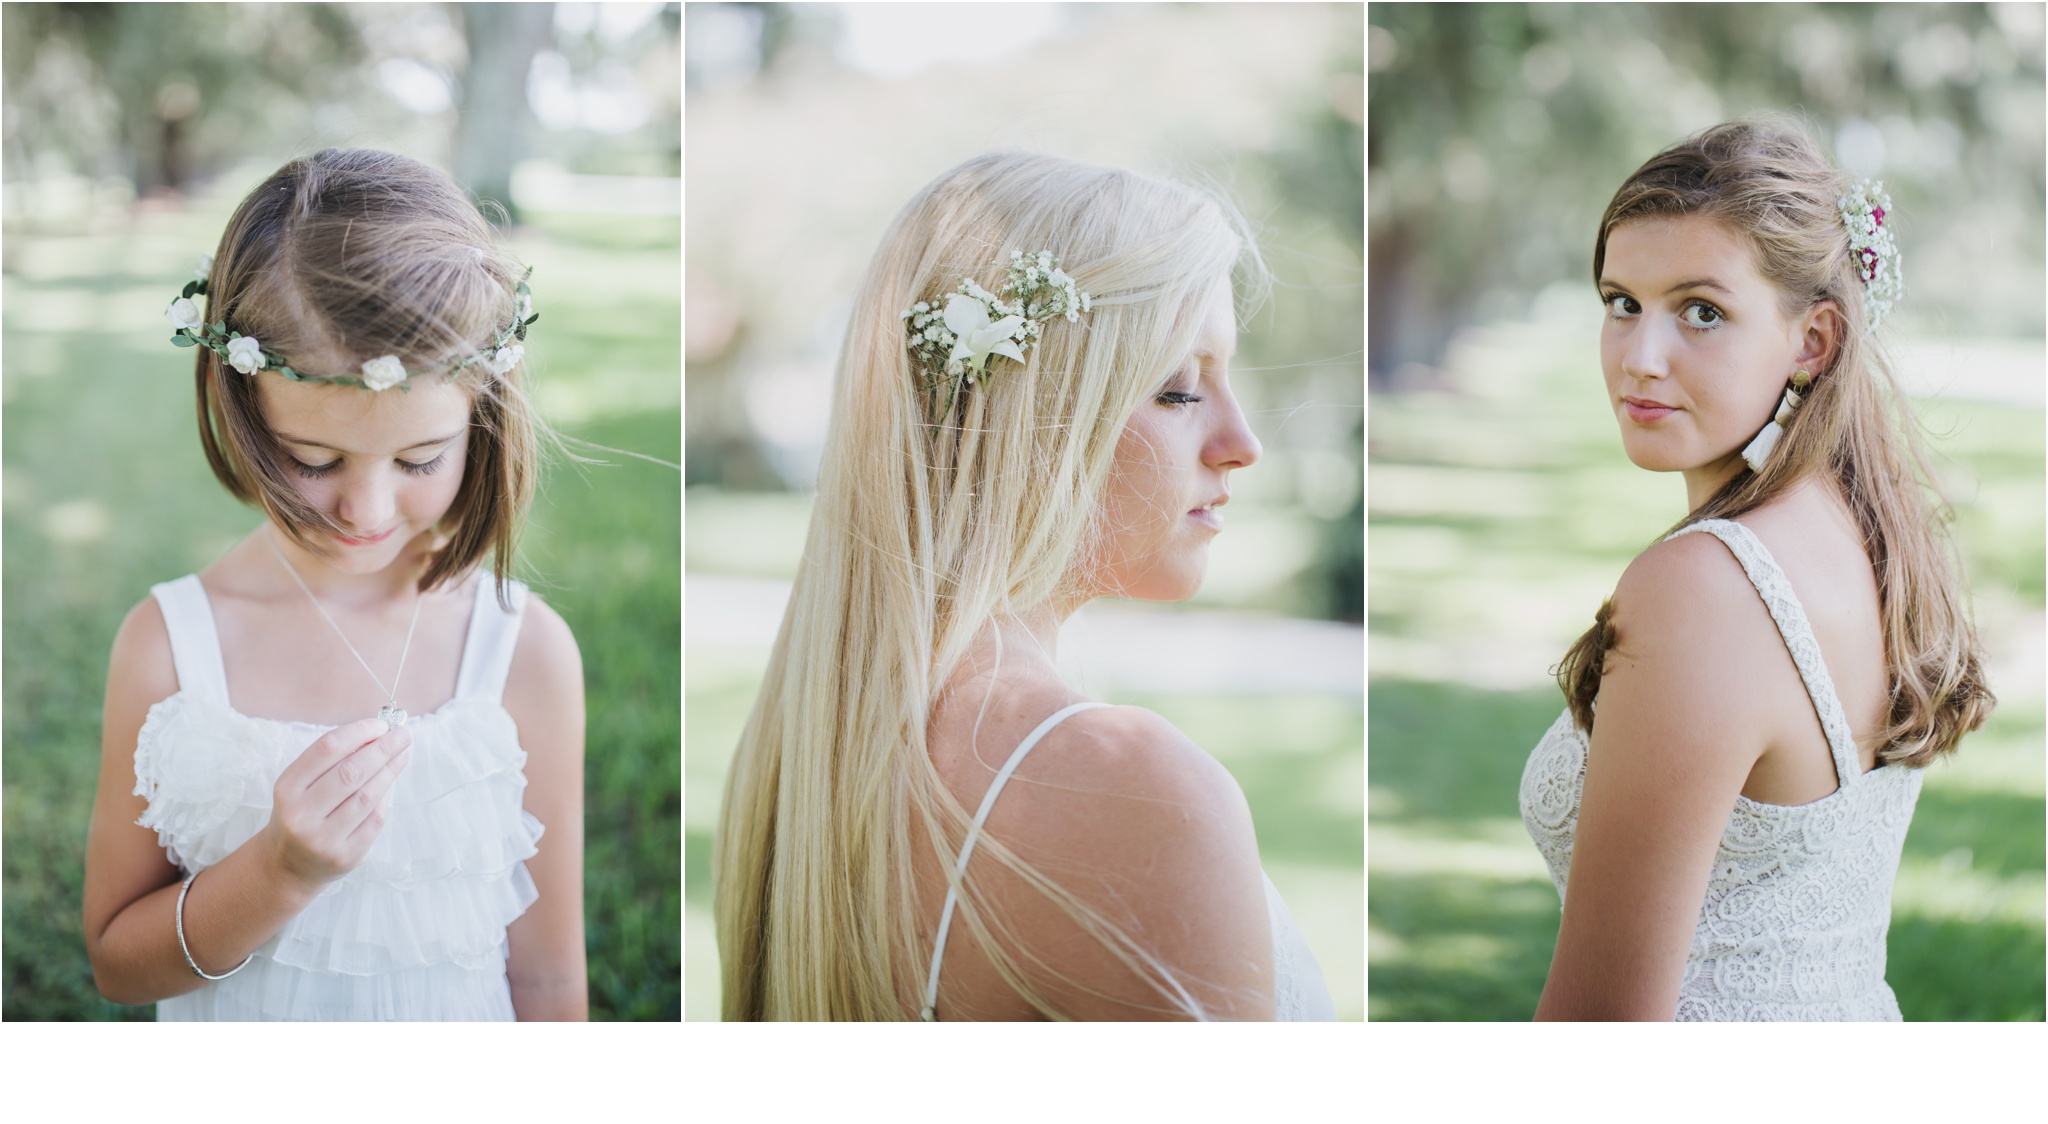 Rainey_Gregg_Photography_St._Simons_Island_Georgia_California_Wedding_Portrait_Photography_1450.jpg